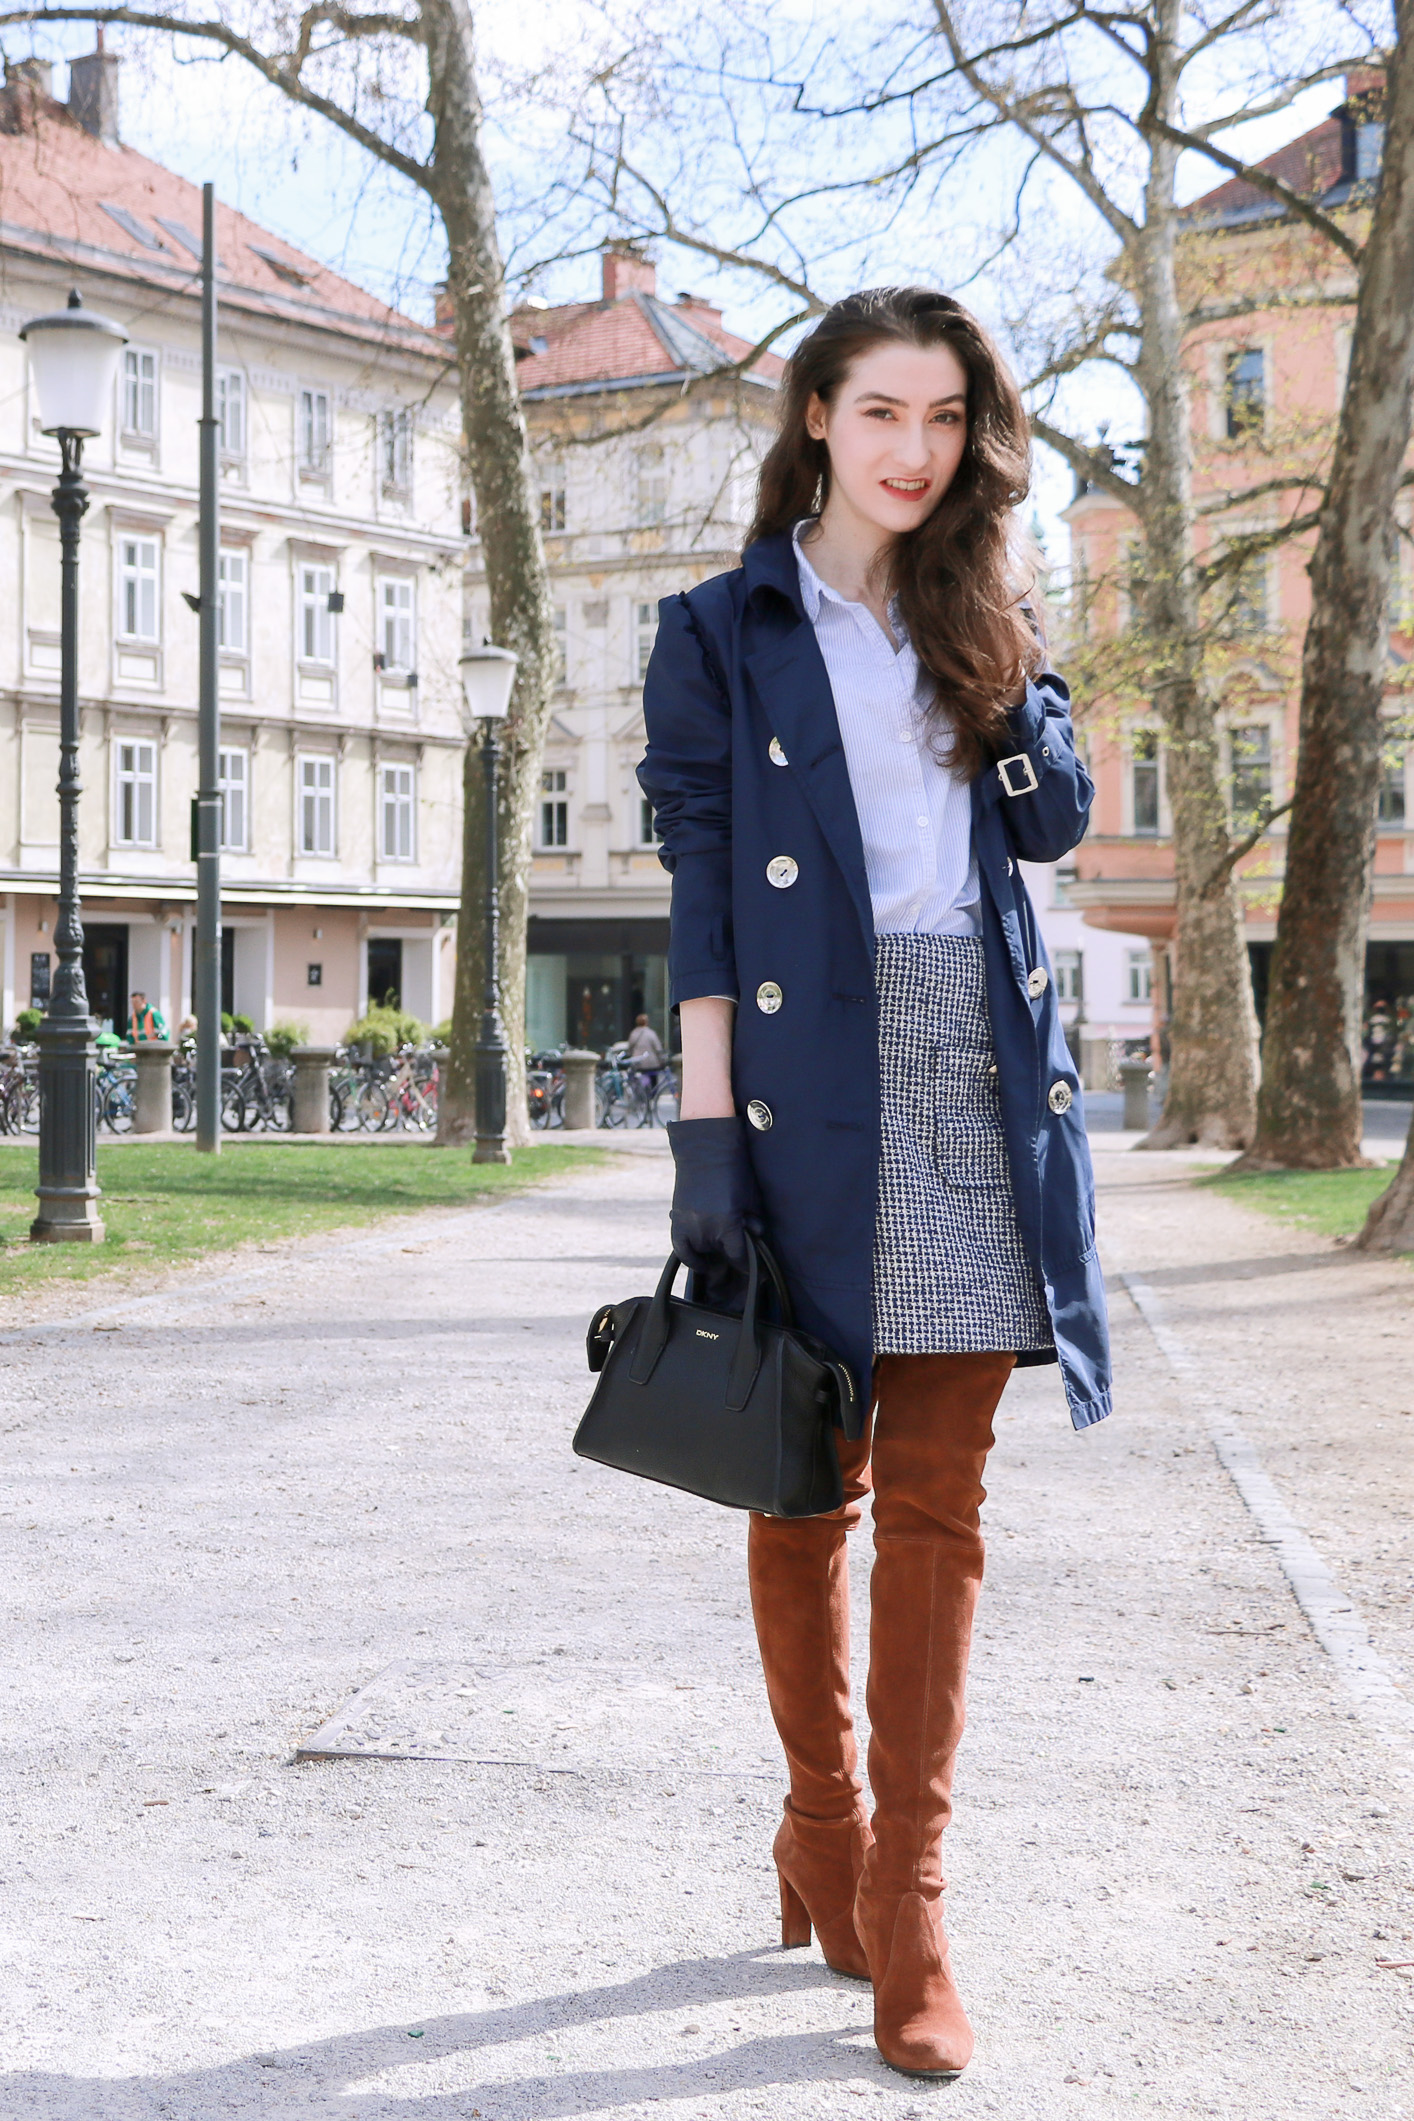 Fashion blogger Veronika Lipar of Brunette From Wall Street sharing how to wear OTK boots in spring